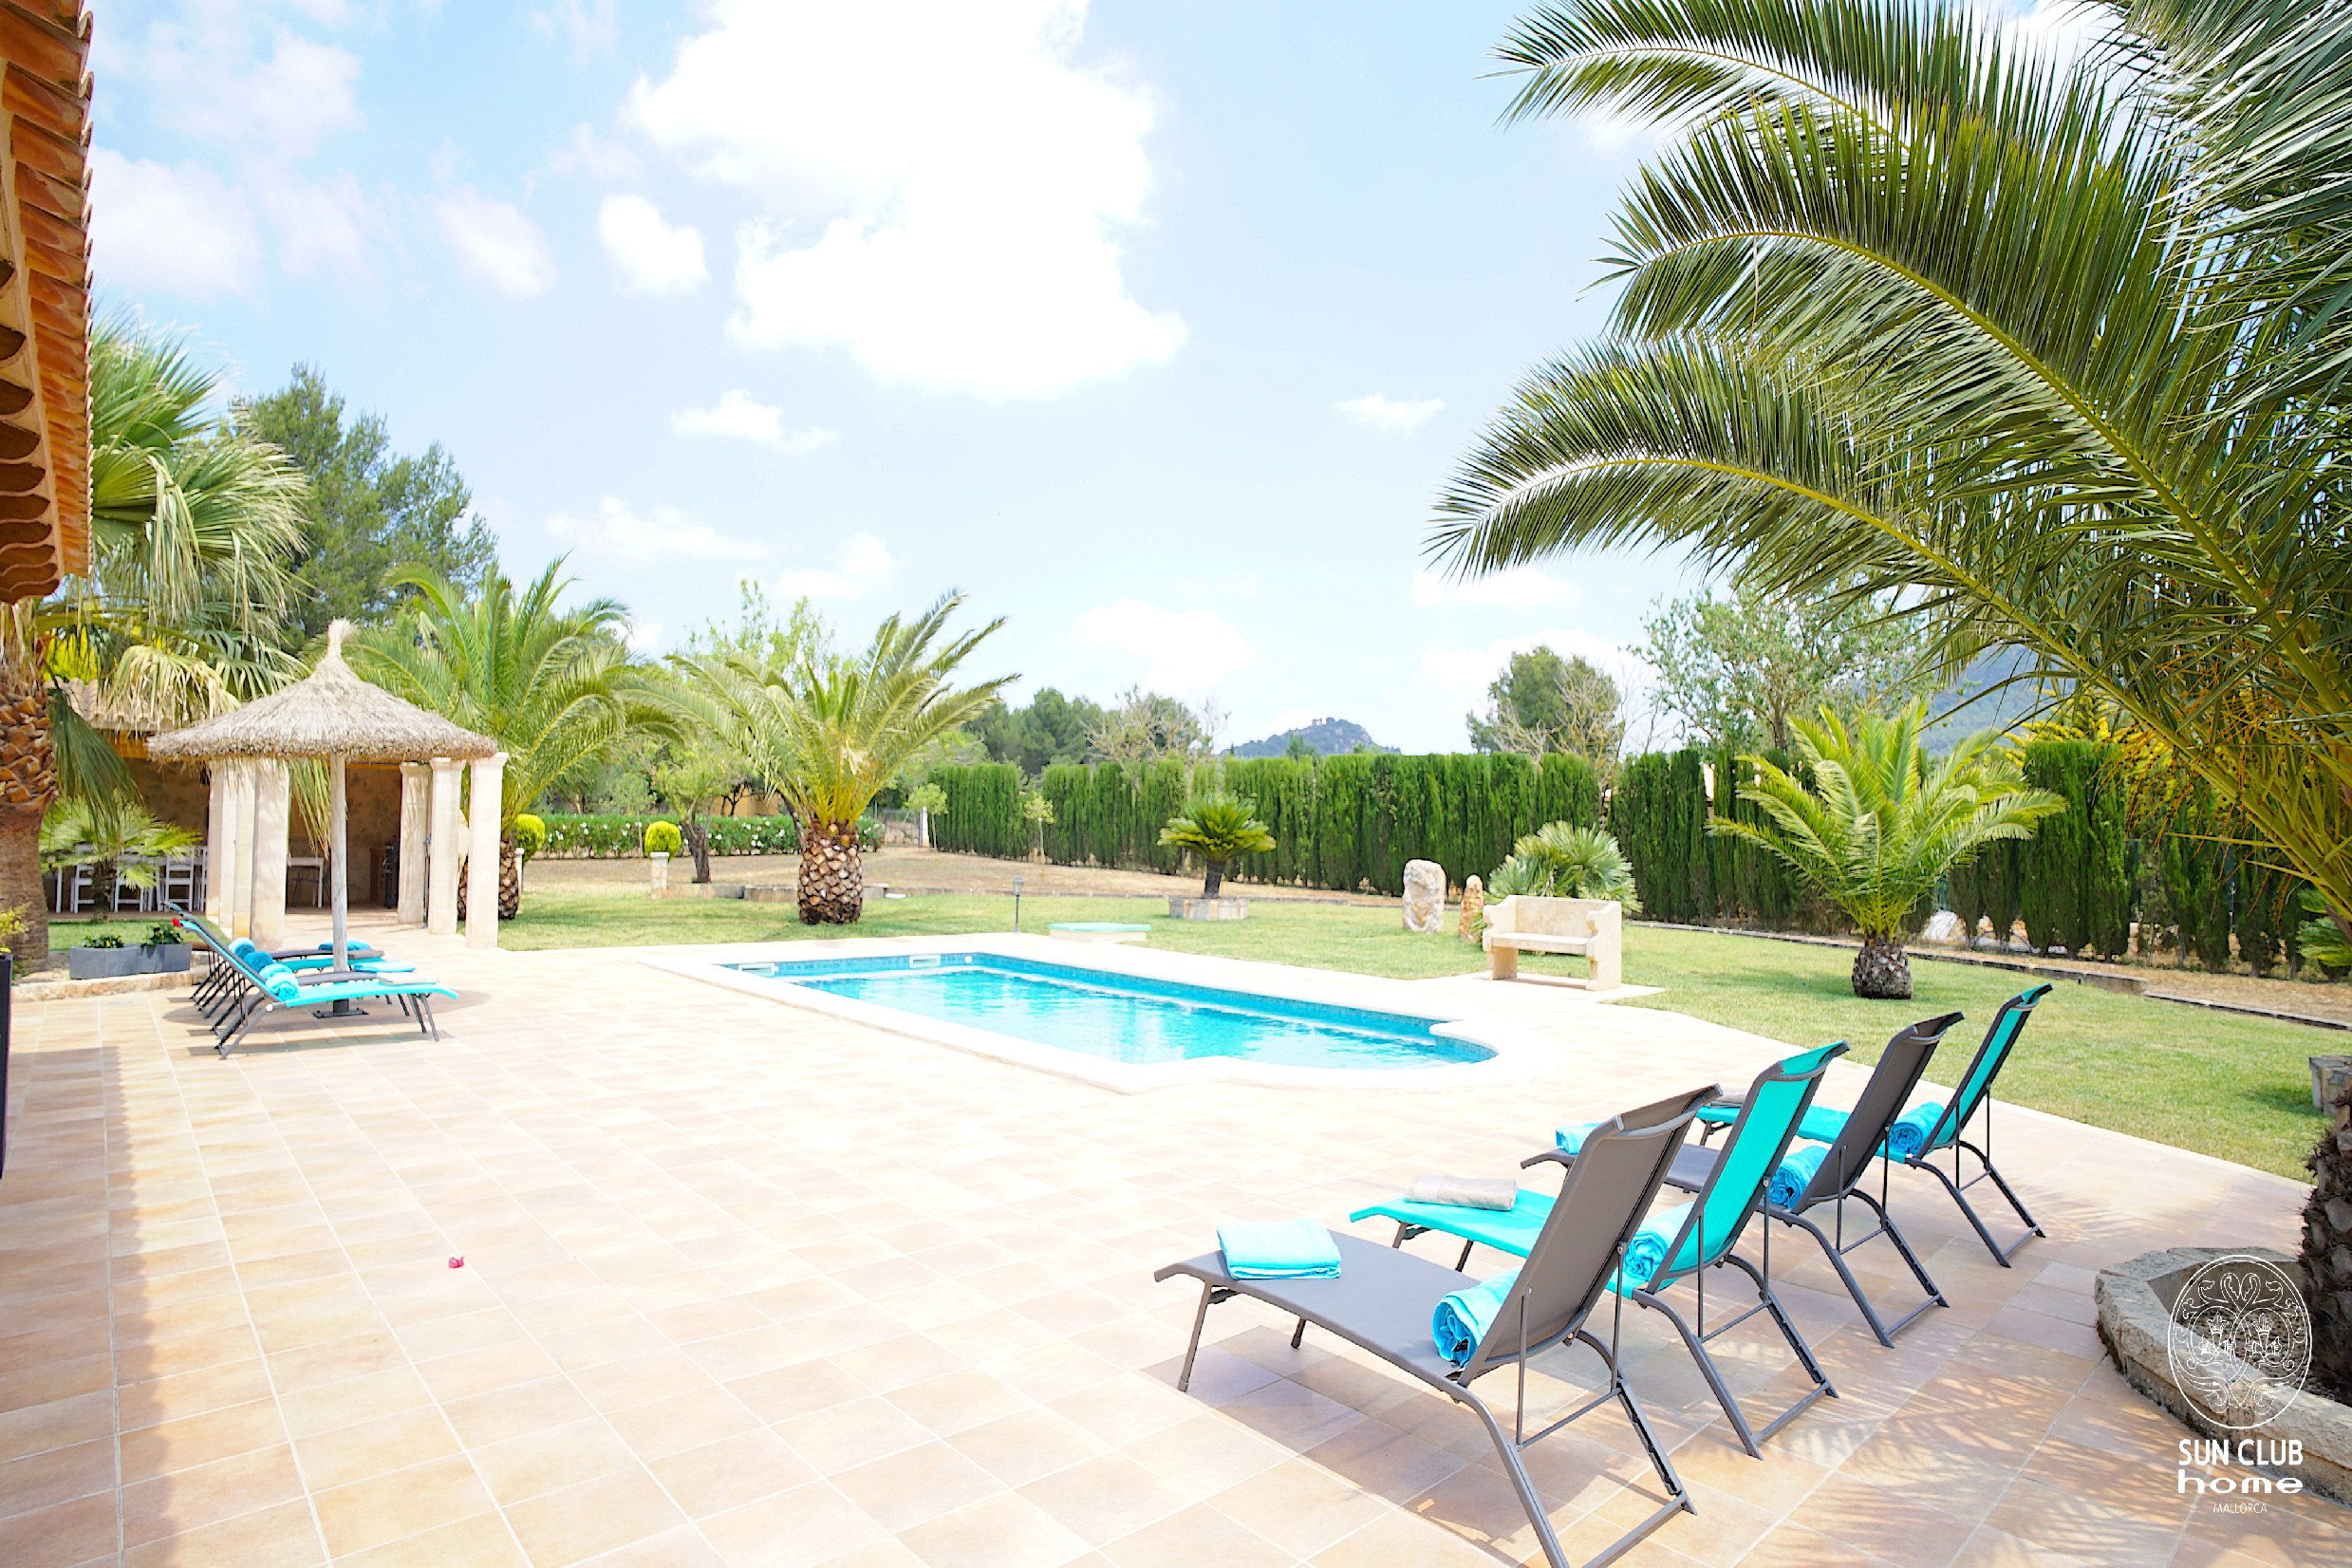 Villa Sun Club Home | Llucmajor | Mallorca